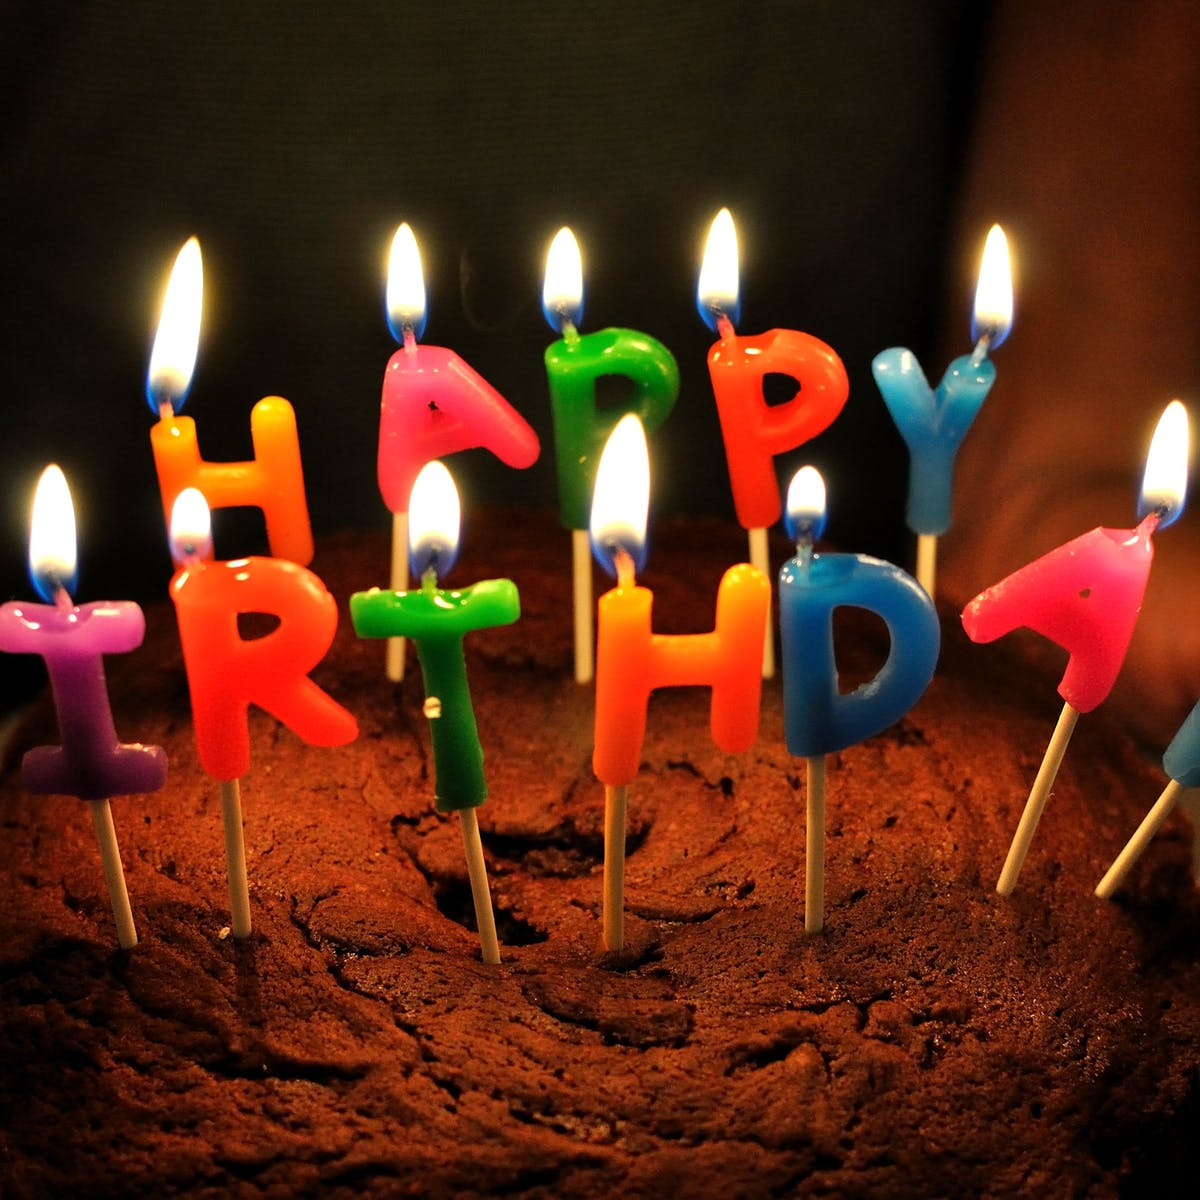 The Case Against Happy Birthday Copyright Protection